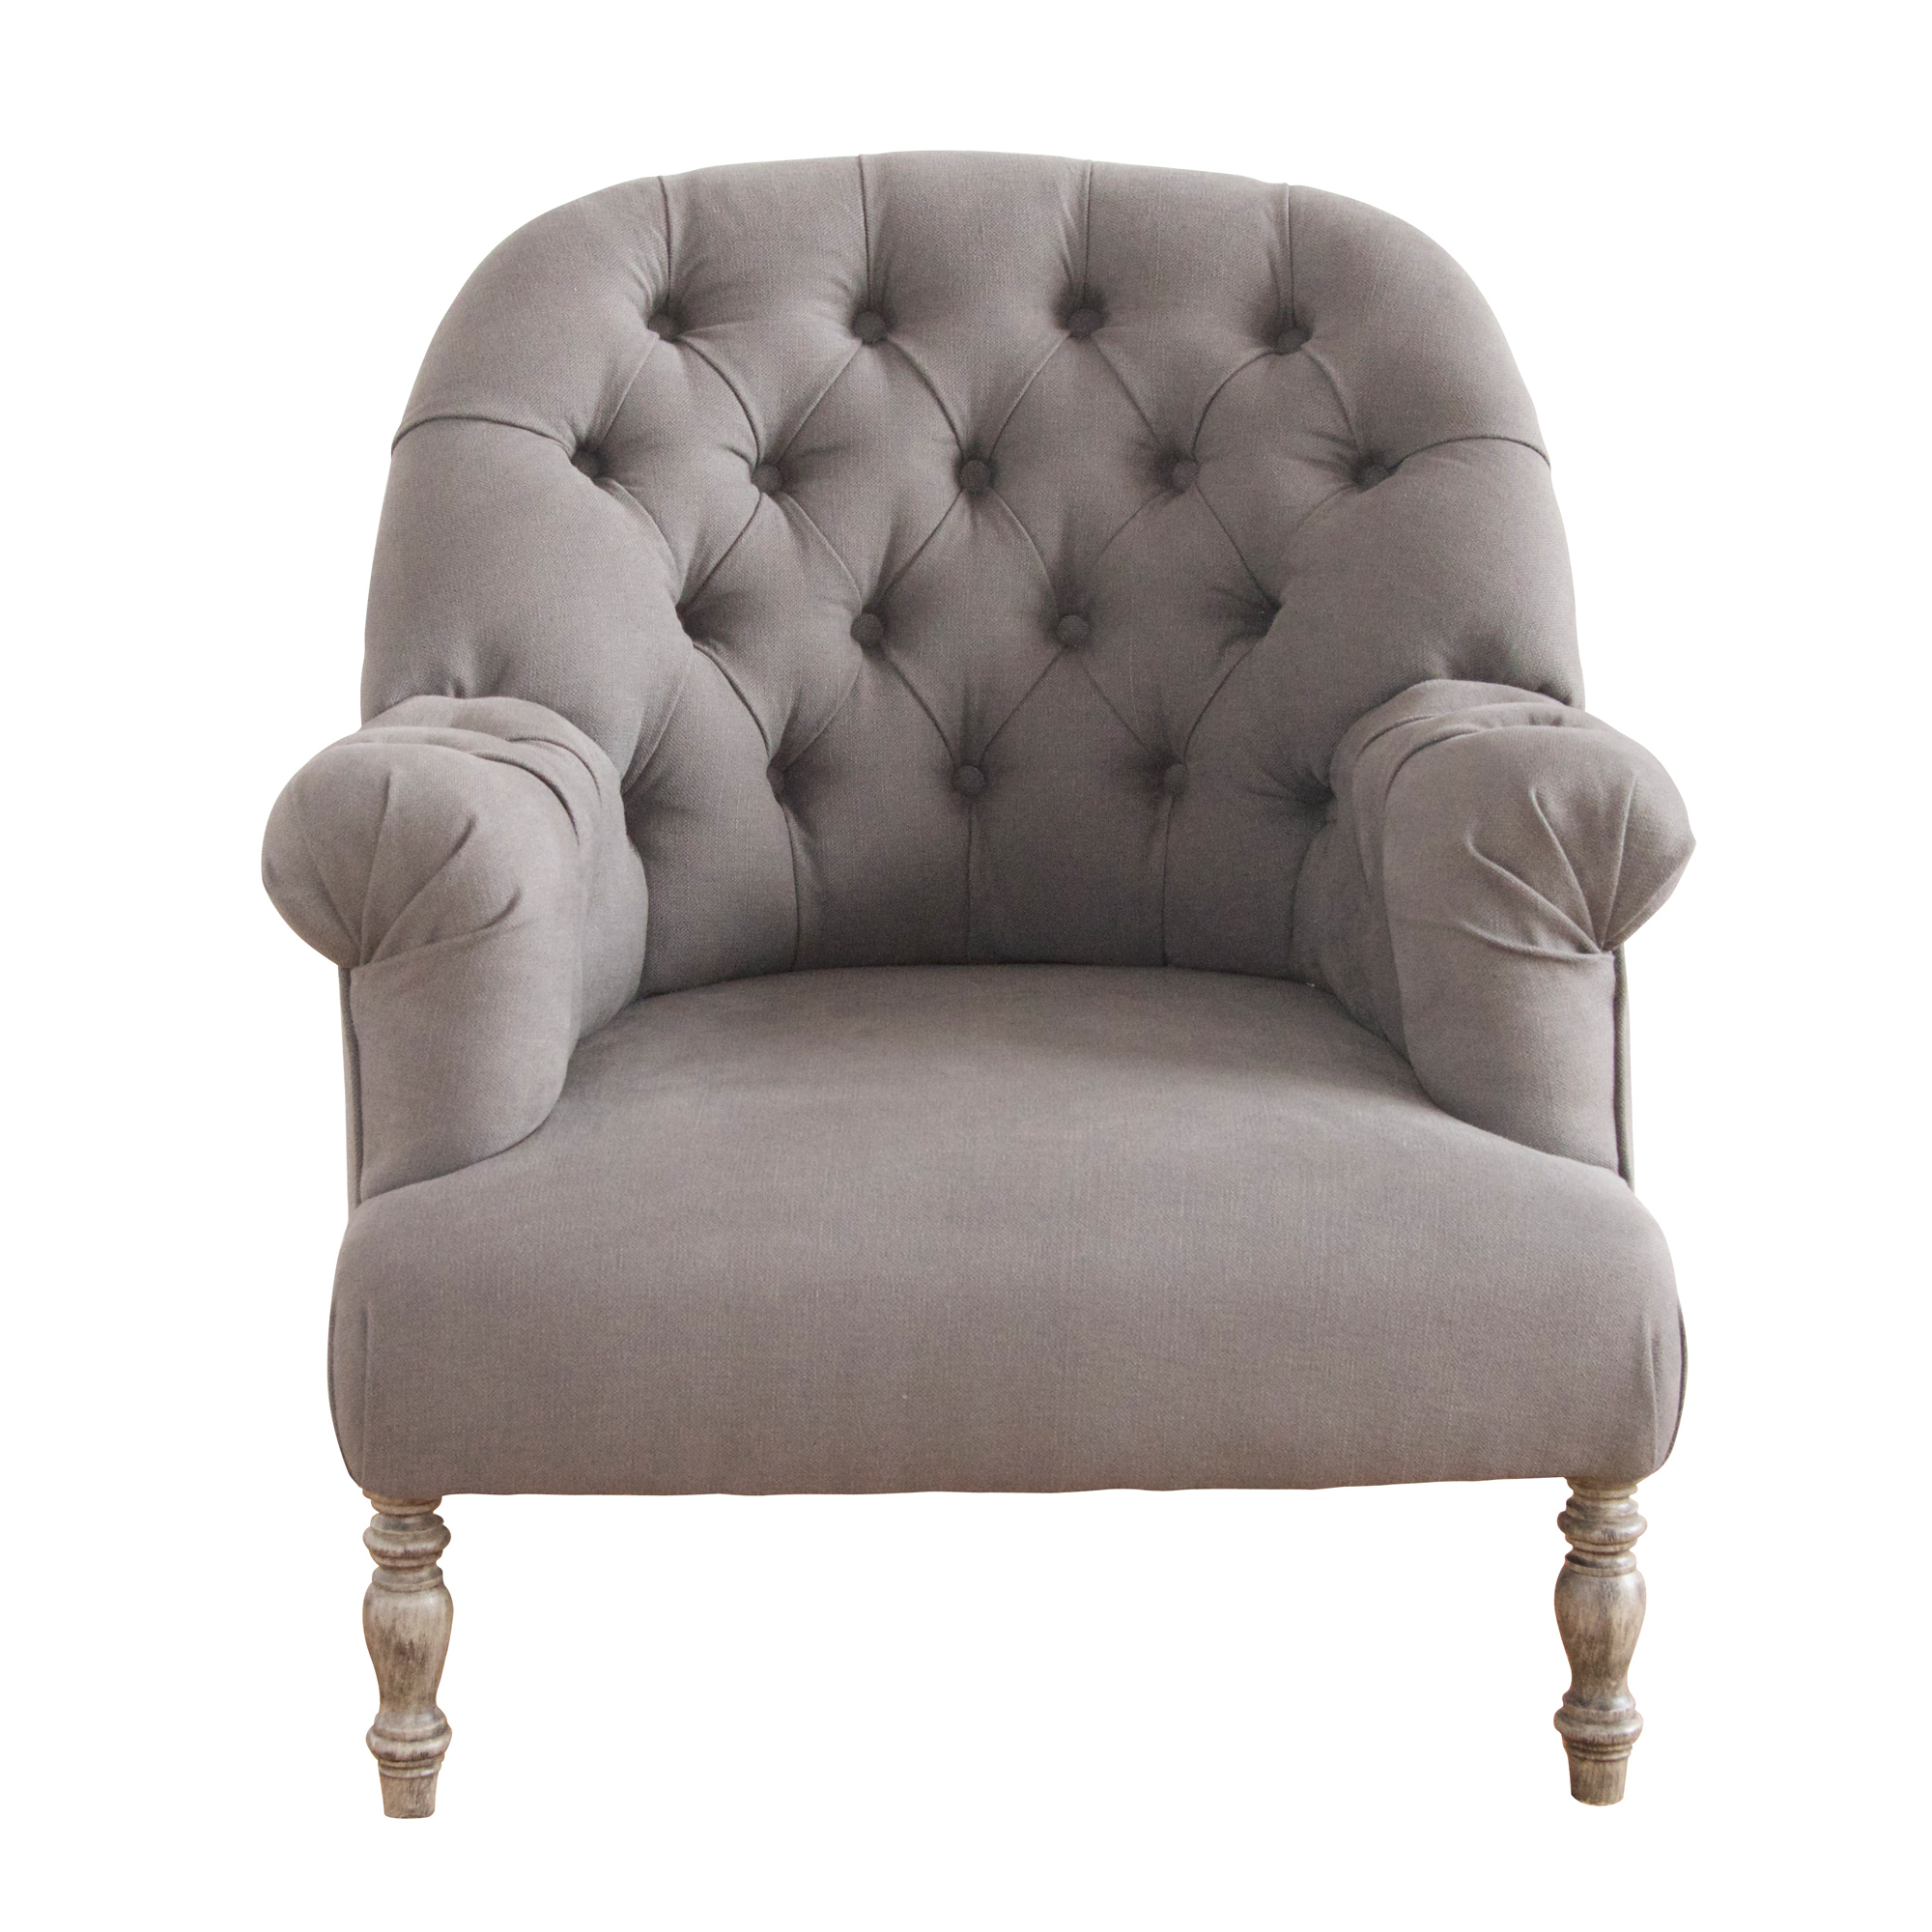 French Button Back Oxford Armchair - - No 44